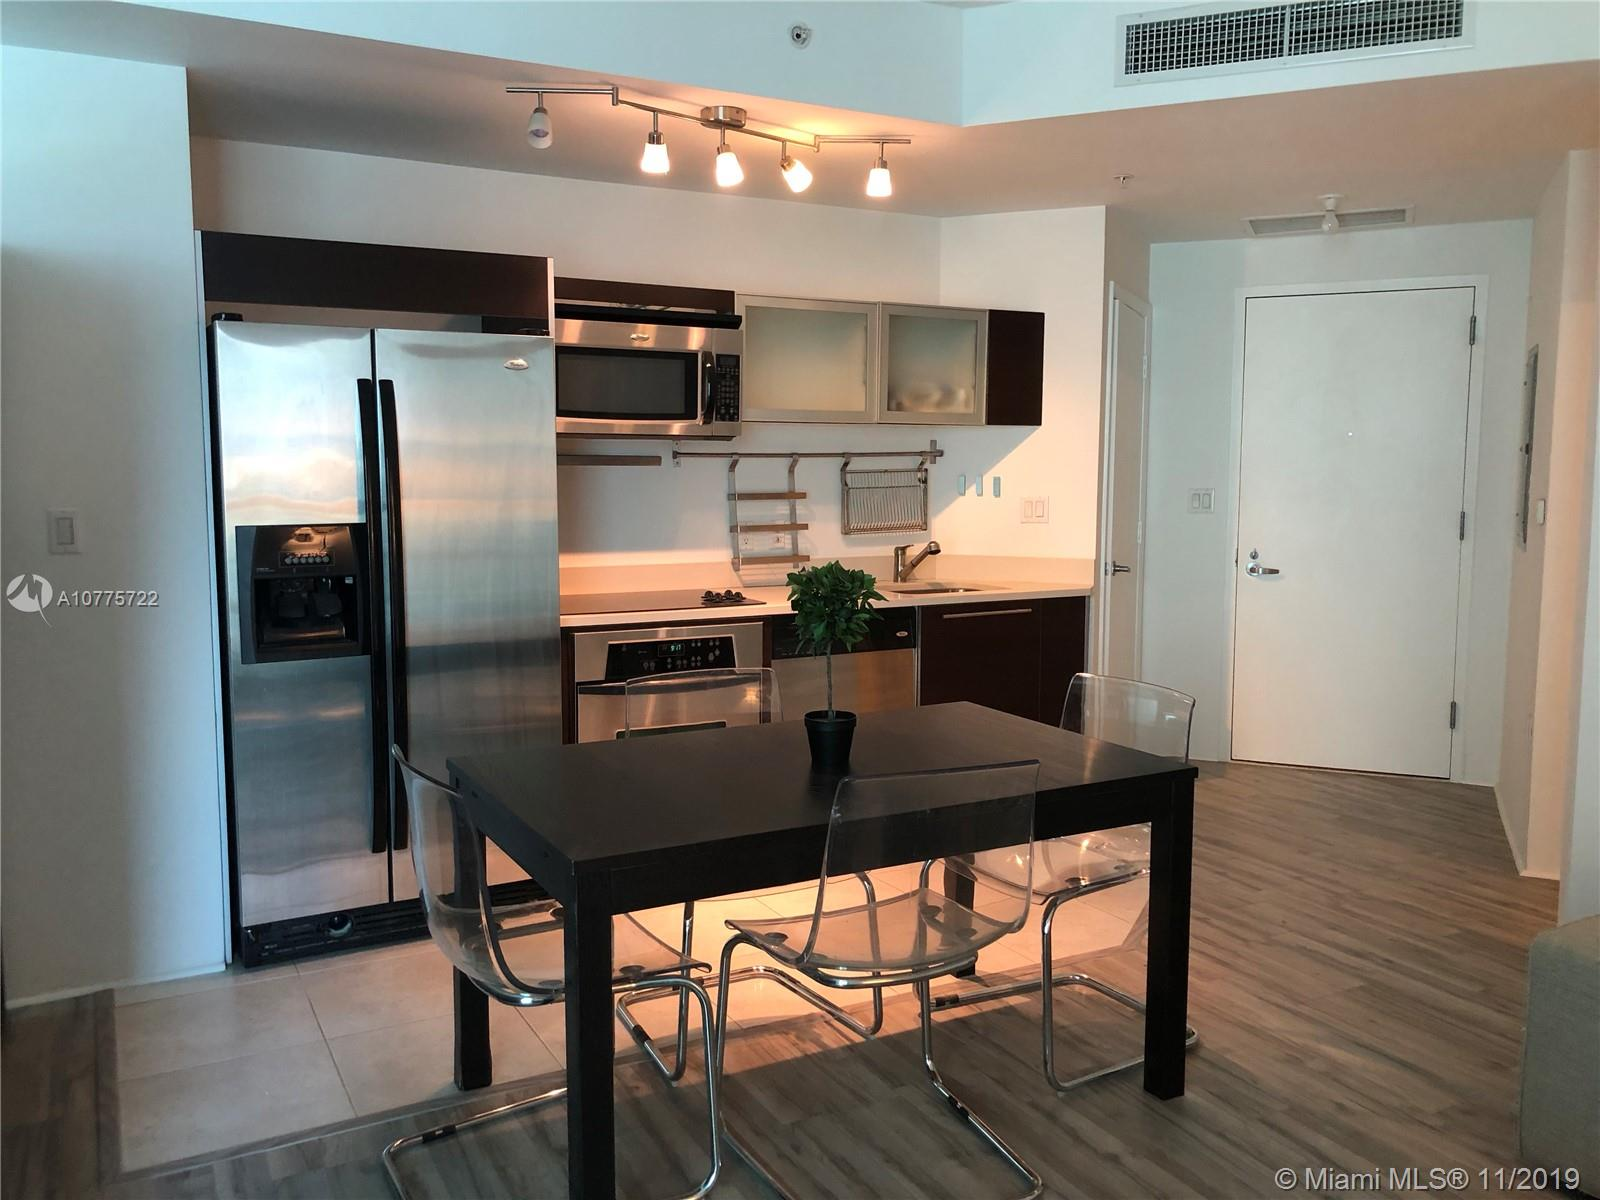 Great for investors, Unit is rented for $1,700 until January 2021